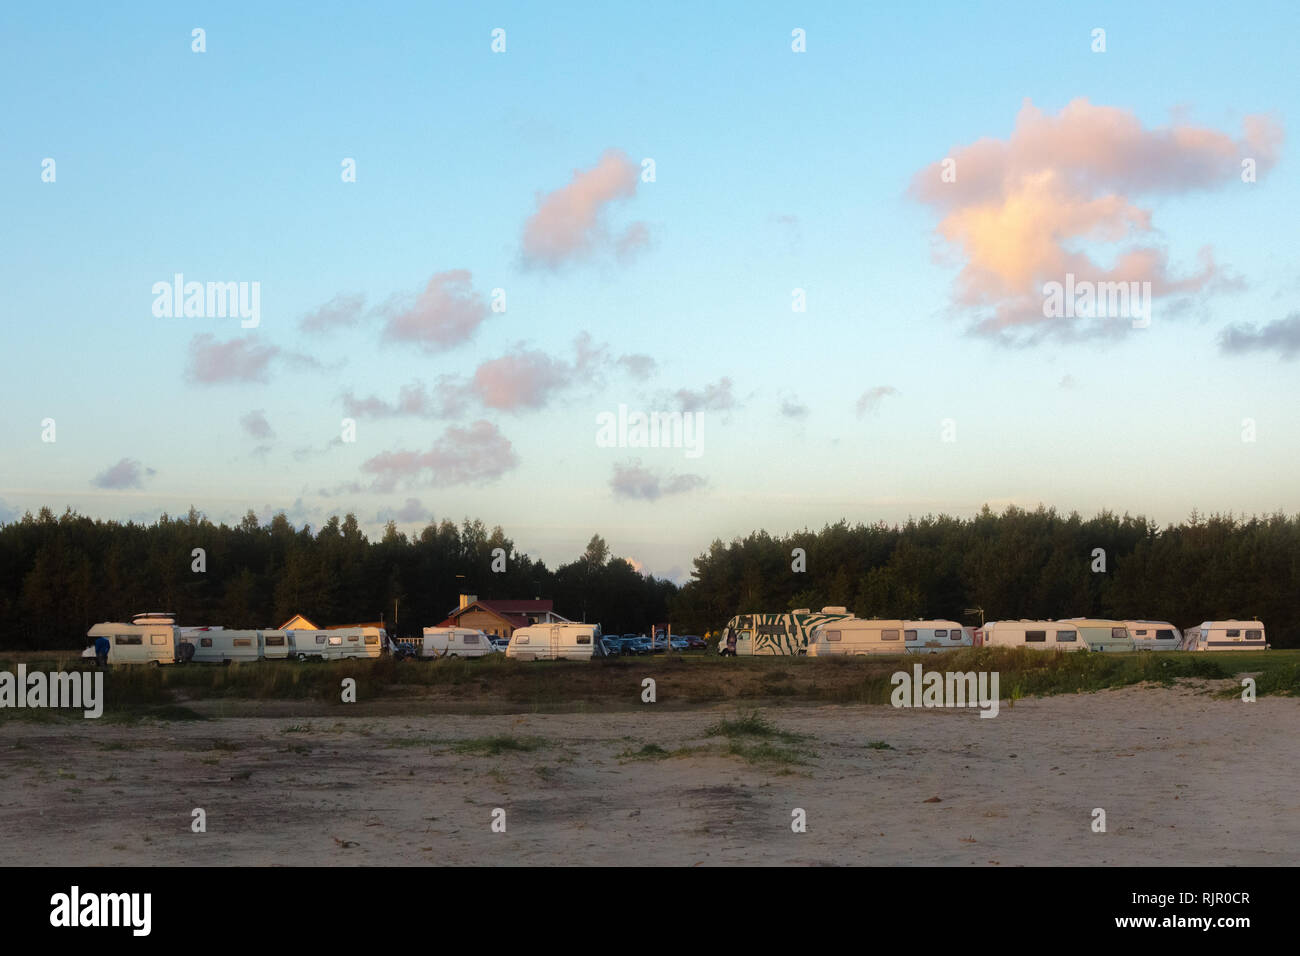 Scenic view of a caravan or trailer park next to woods in summer sunset with blue sky Stock Photo